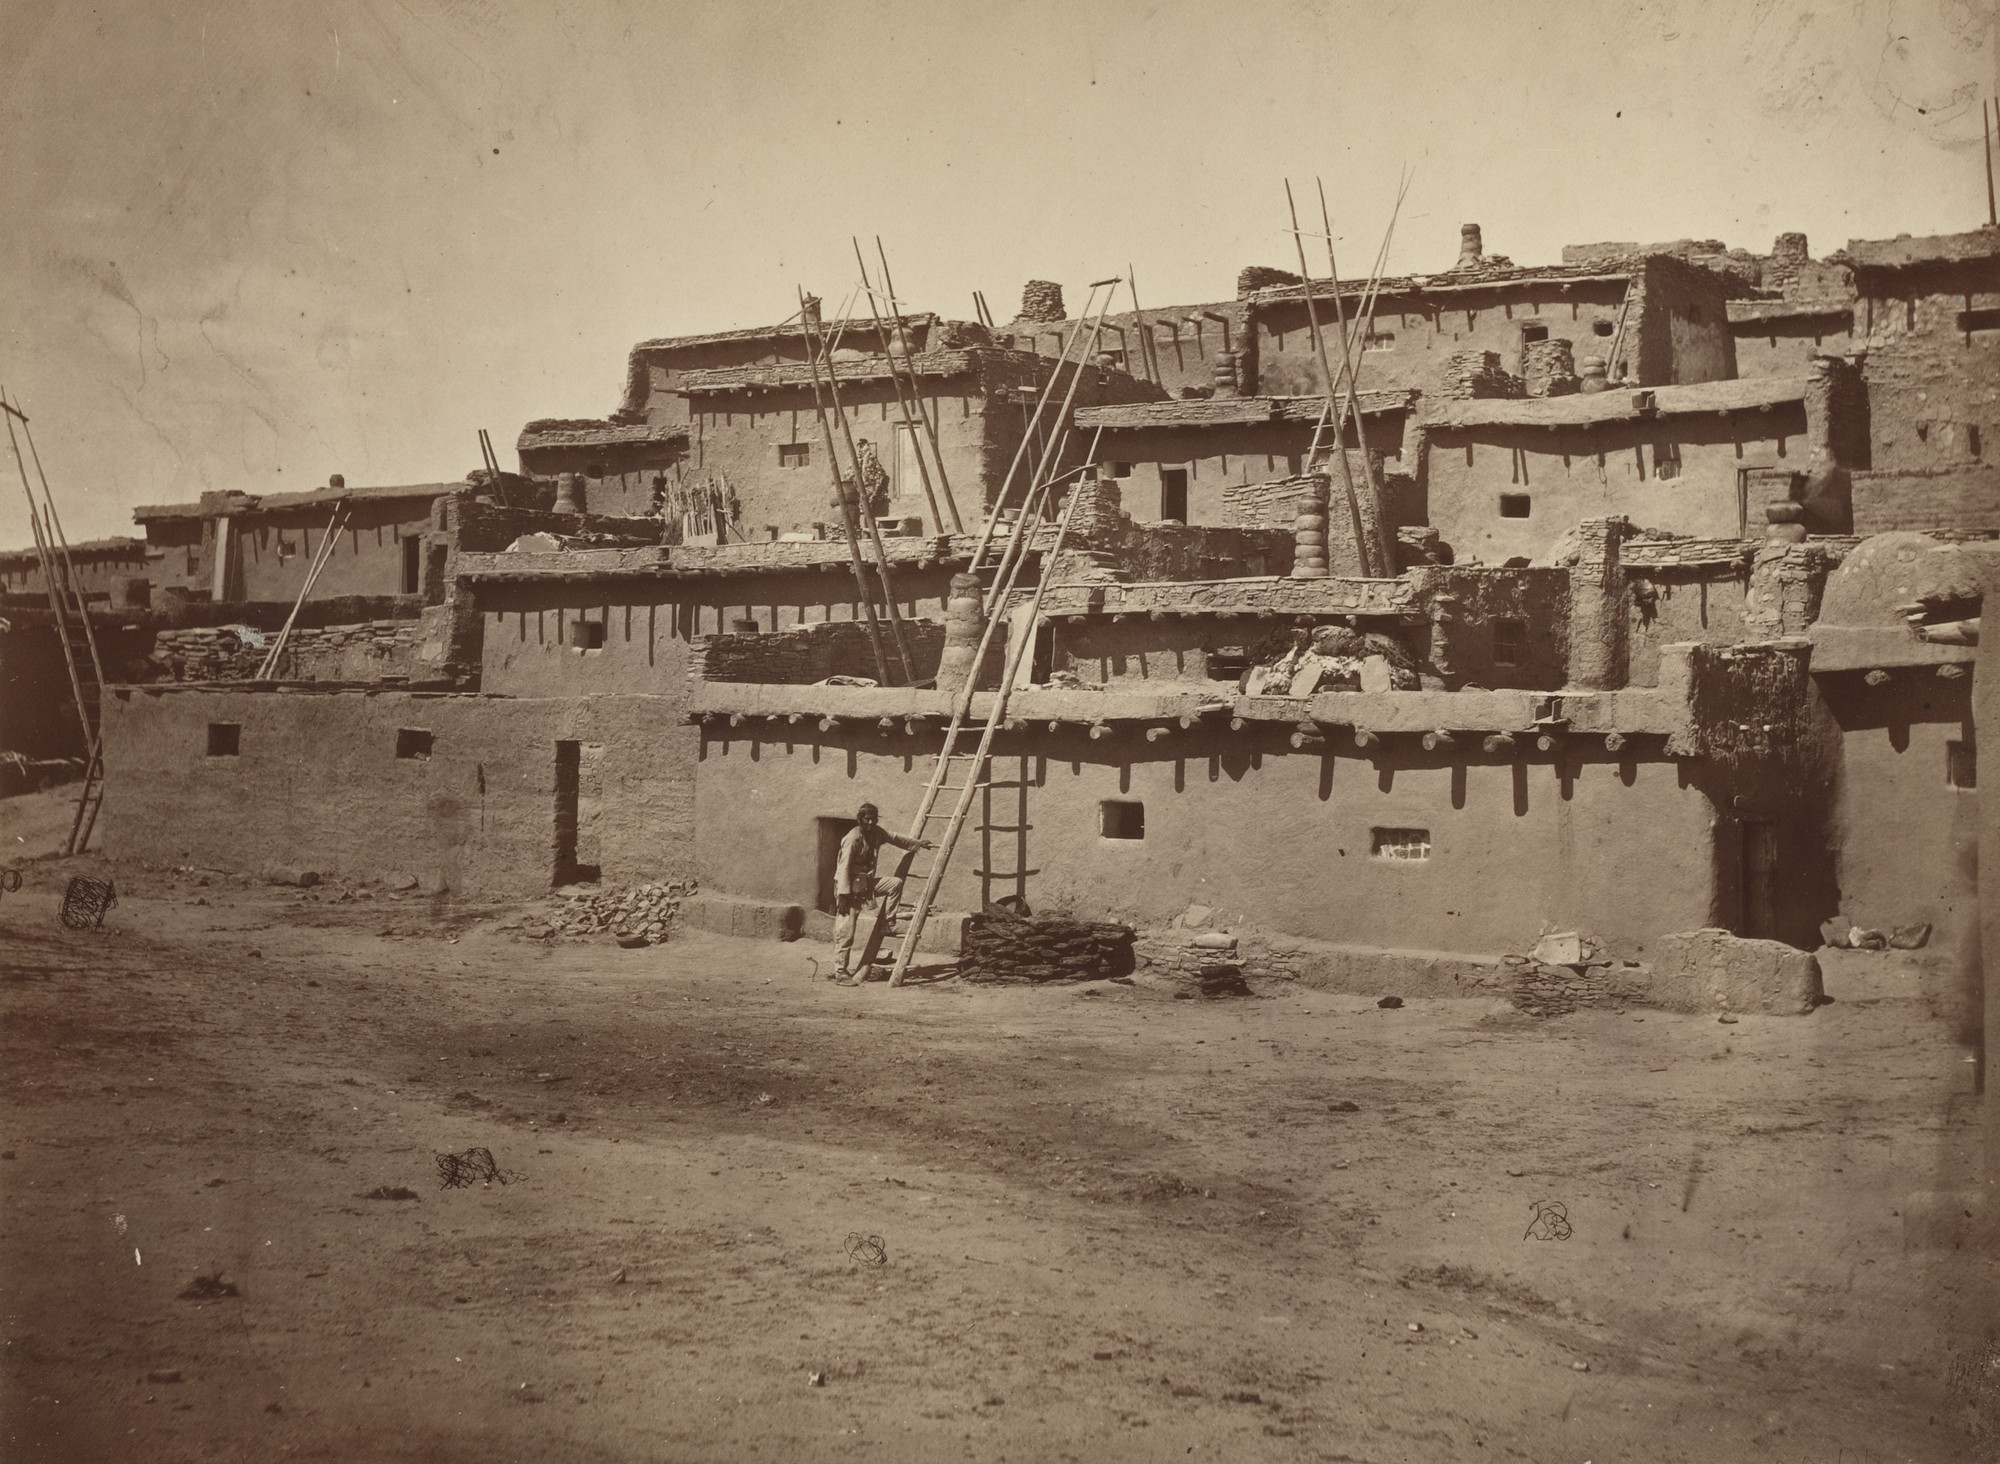 Timothy O'Sullivan. Section of South Side of Zuni Pueblo, N.M.. Seasons of 1871, 1872 and 1873